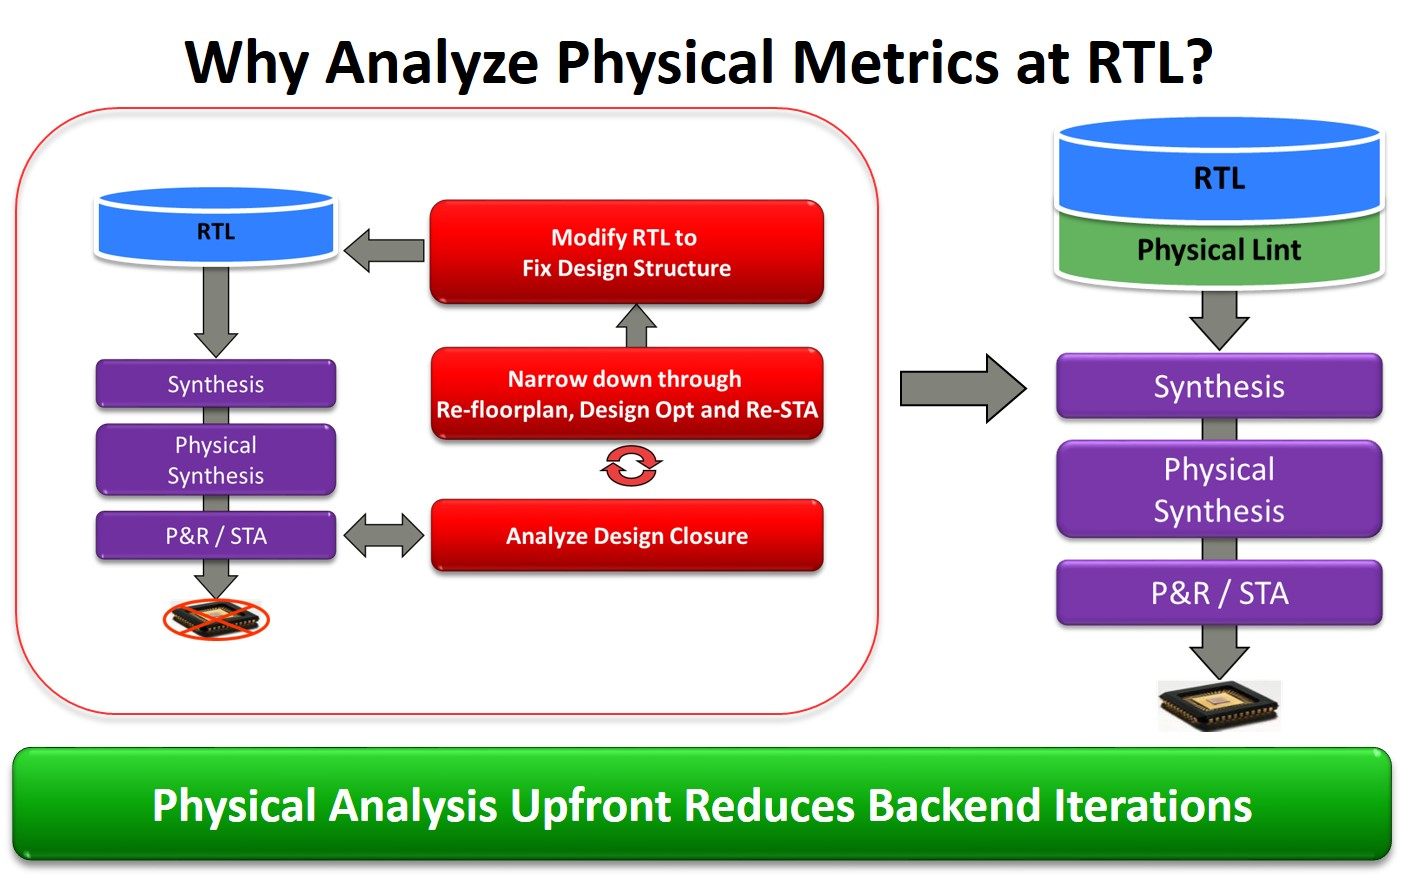 Why Analyze Physical Metrics at RTL